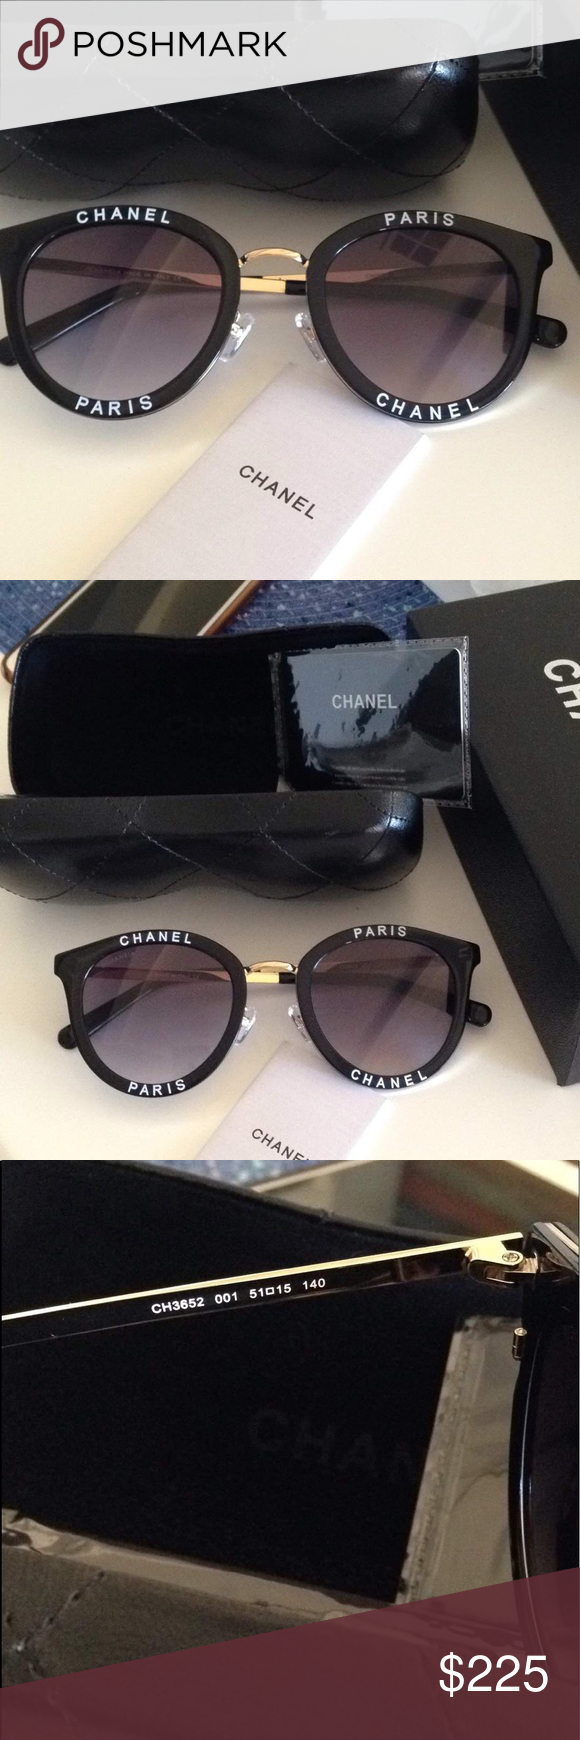 b2cea573bfcf Nwt Chanel sunglasses Brand new never used sunglasses with case and box  CHANEL Accessories Sunglasses